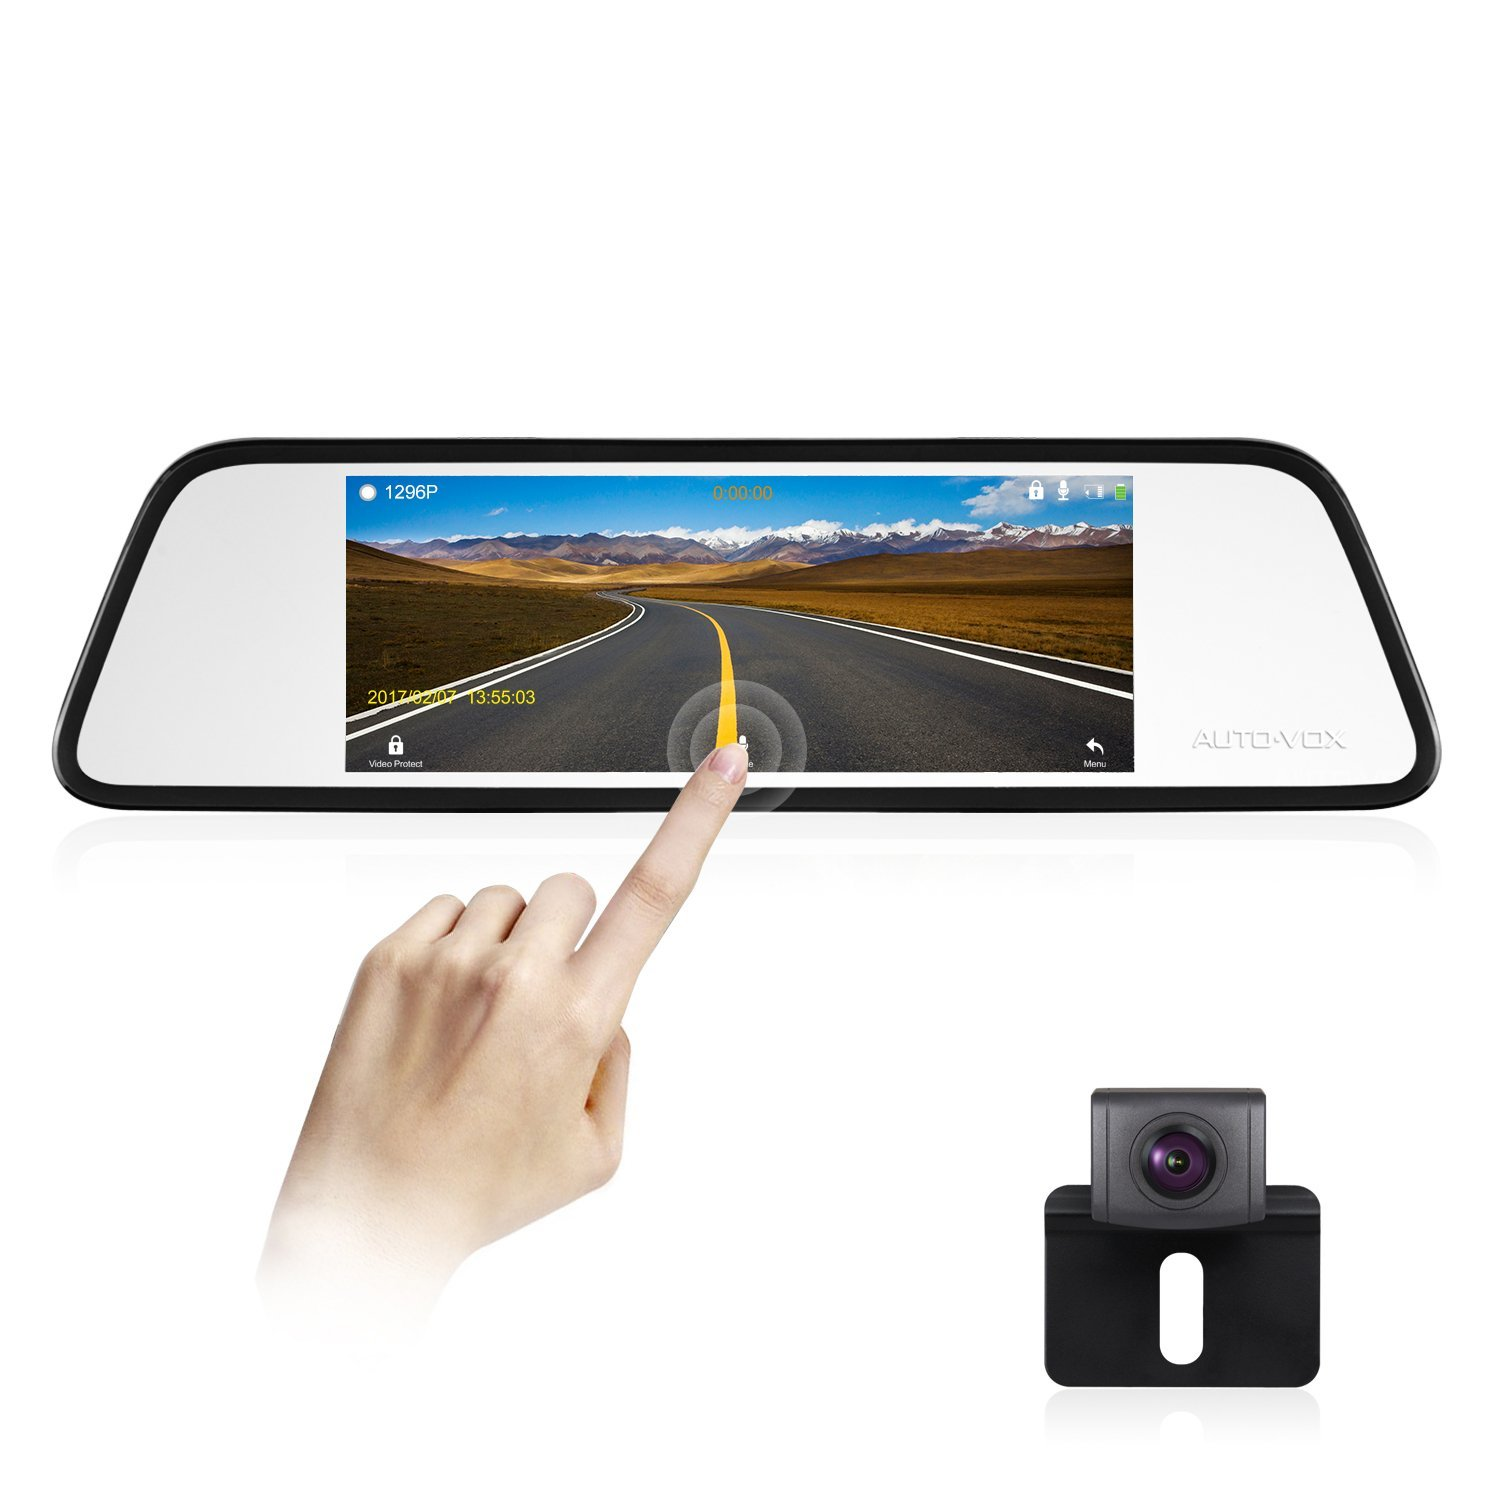 AUTO-VOX M8 1296P 8.68'' LCD Large Touch Screen Mirror Dash Cam Backup Camera Kit 180?Horizontal View Angle Back up Car Camera, Lane Departure Warning System, Security Alarm & Motion Detection